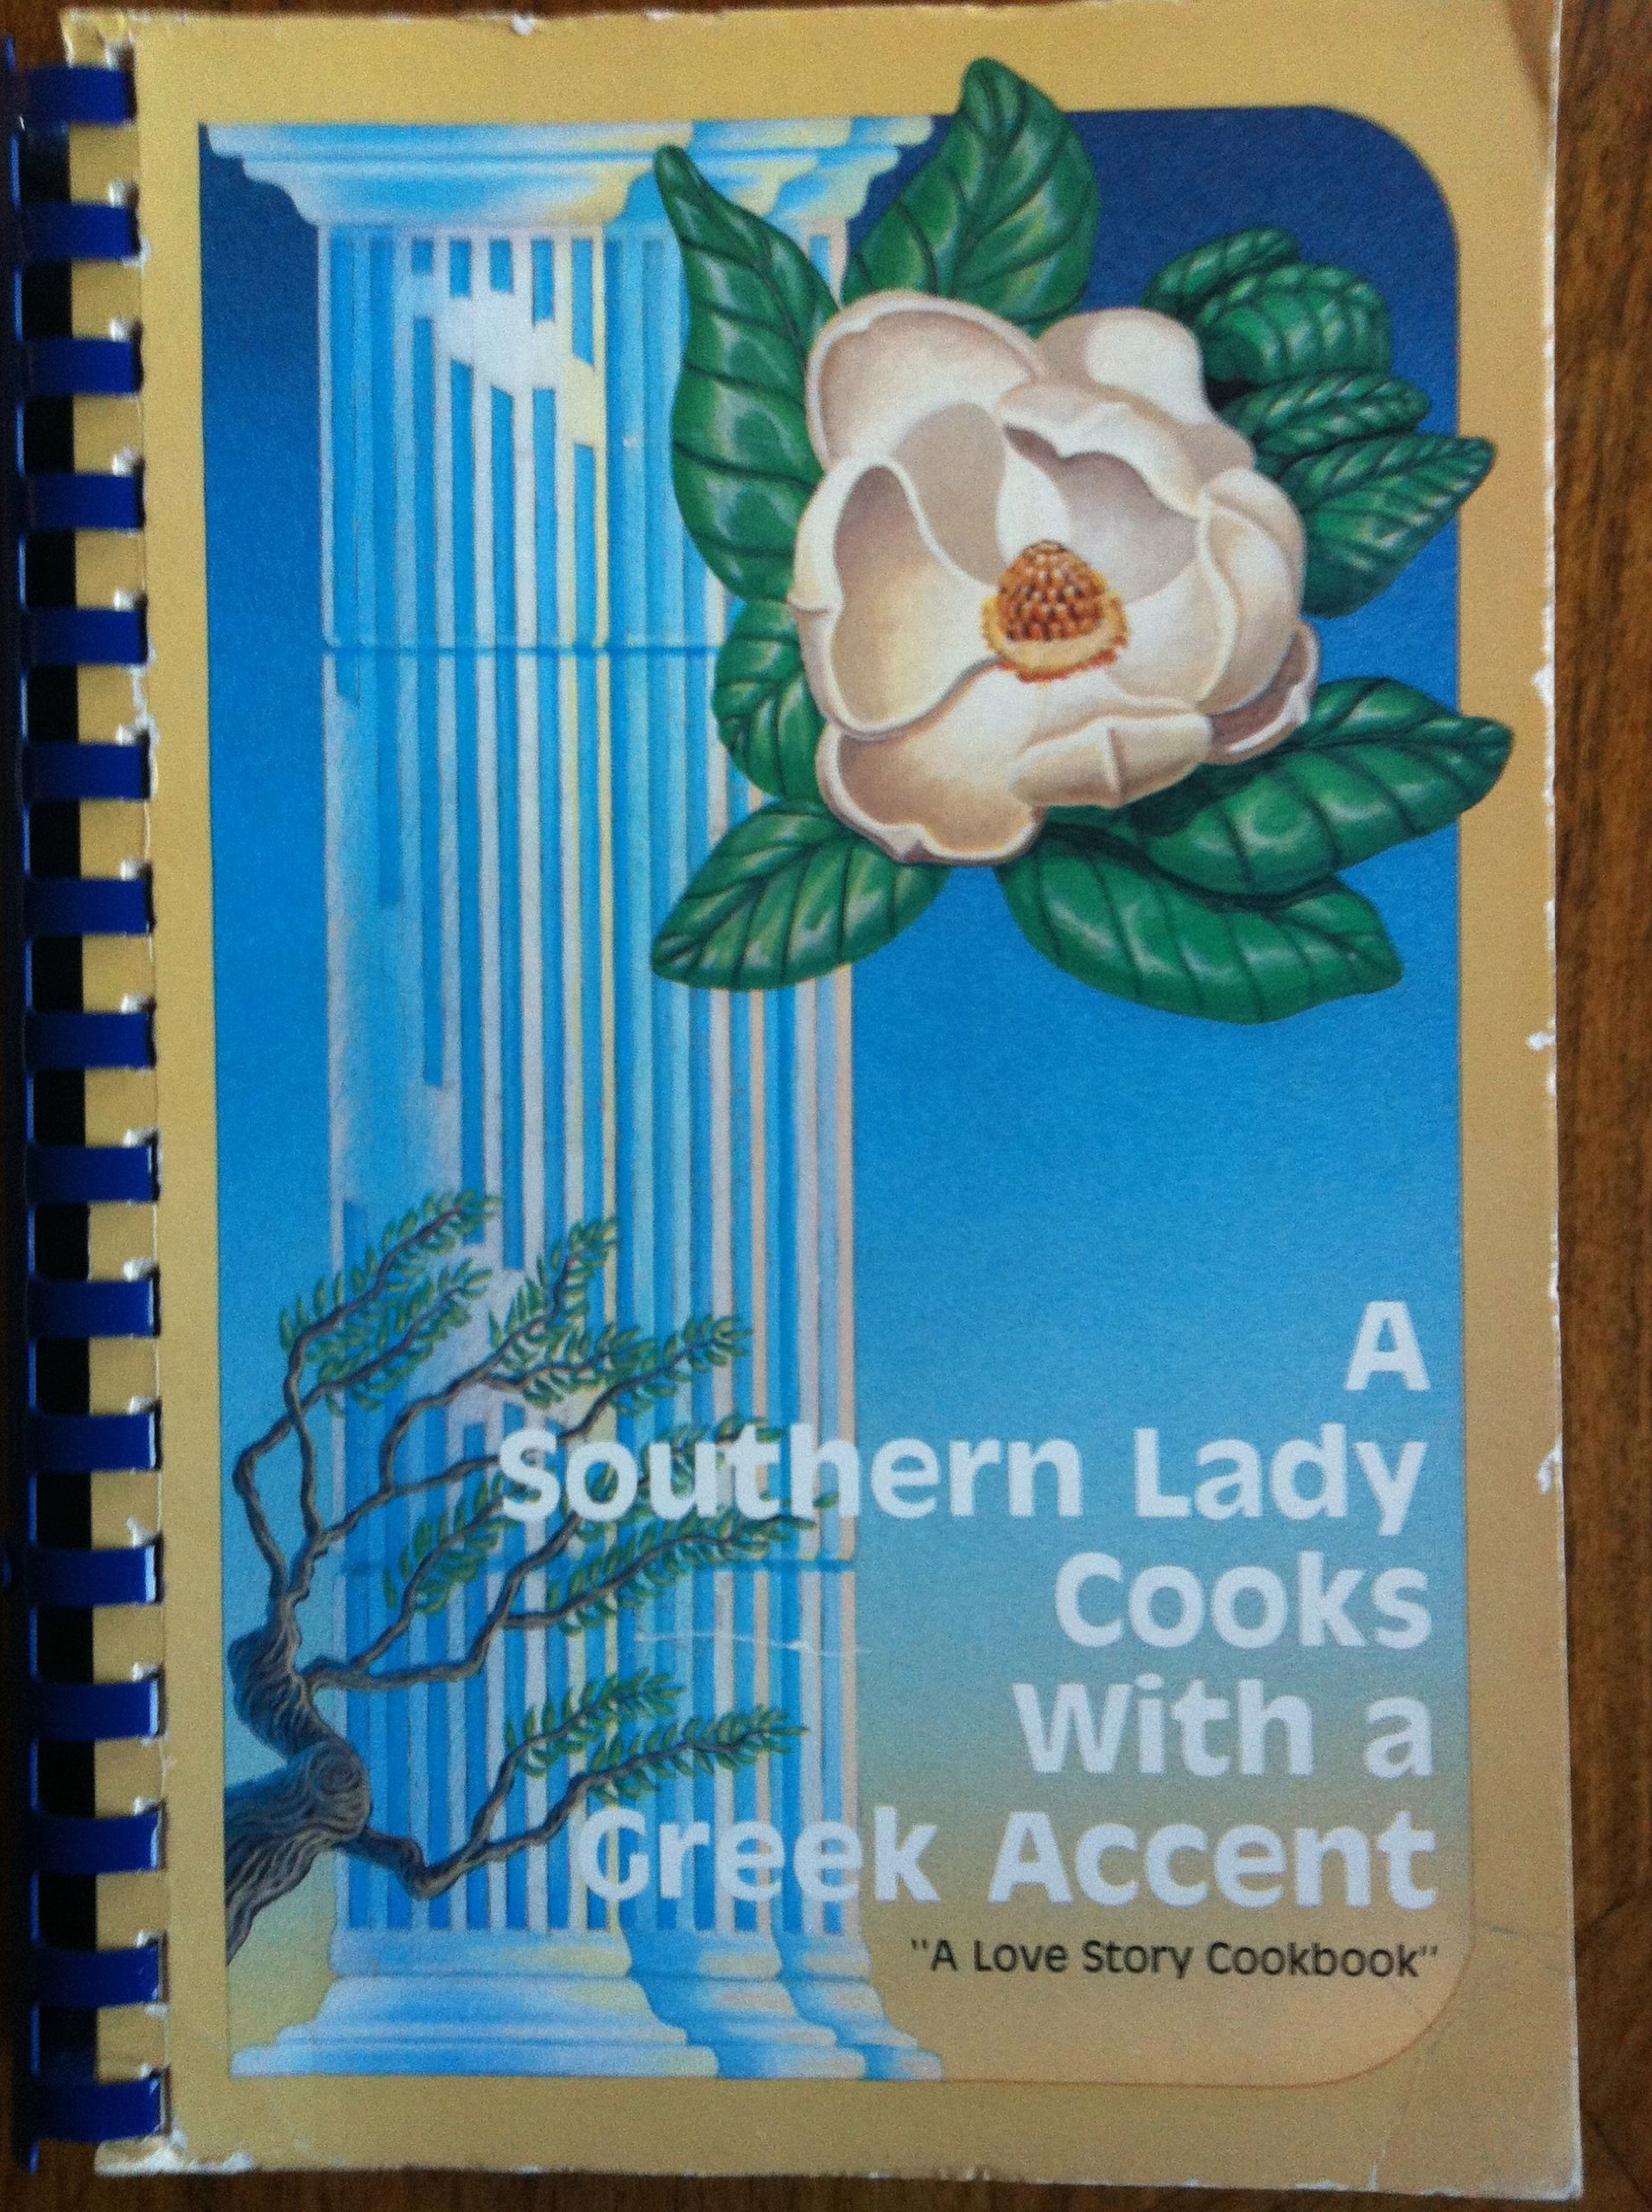 Southern Lady Cooks With a Greek Accent: Sophia Clikas